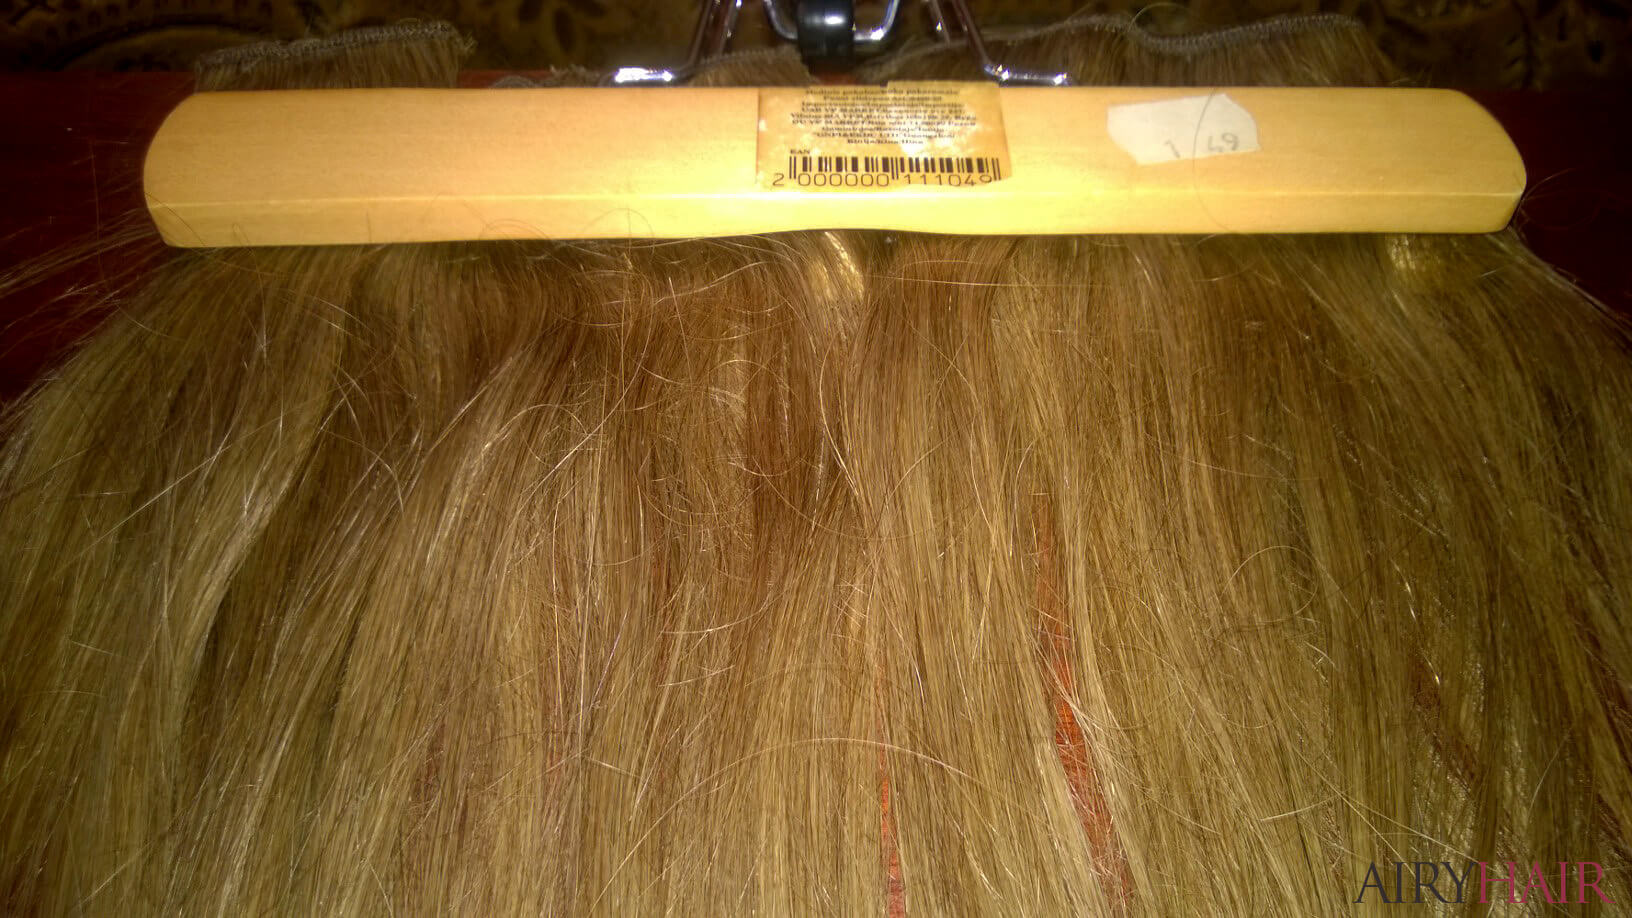 Who Sells Hair Extensions Image Collections Hair Extensions For